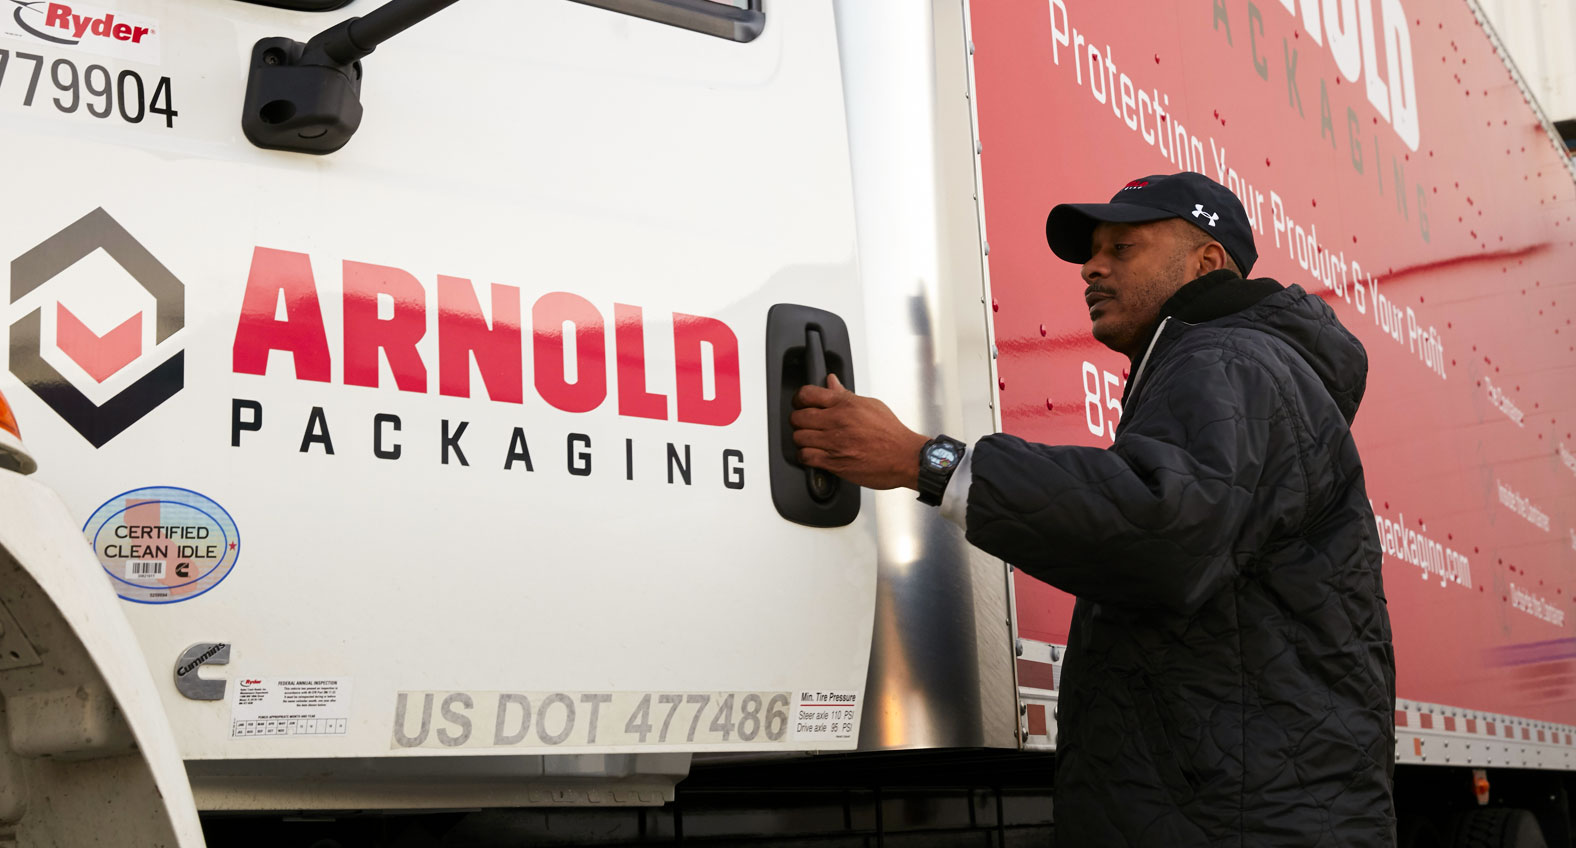 Delivery driver with truck